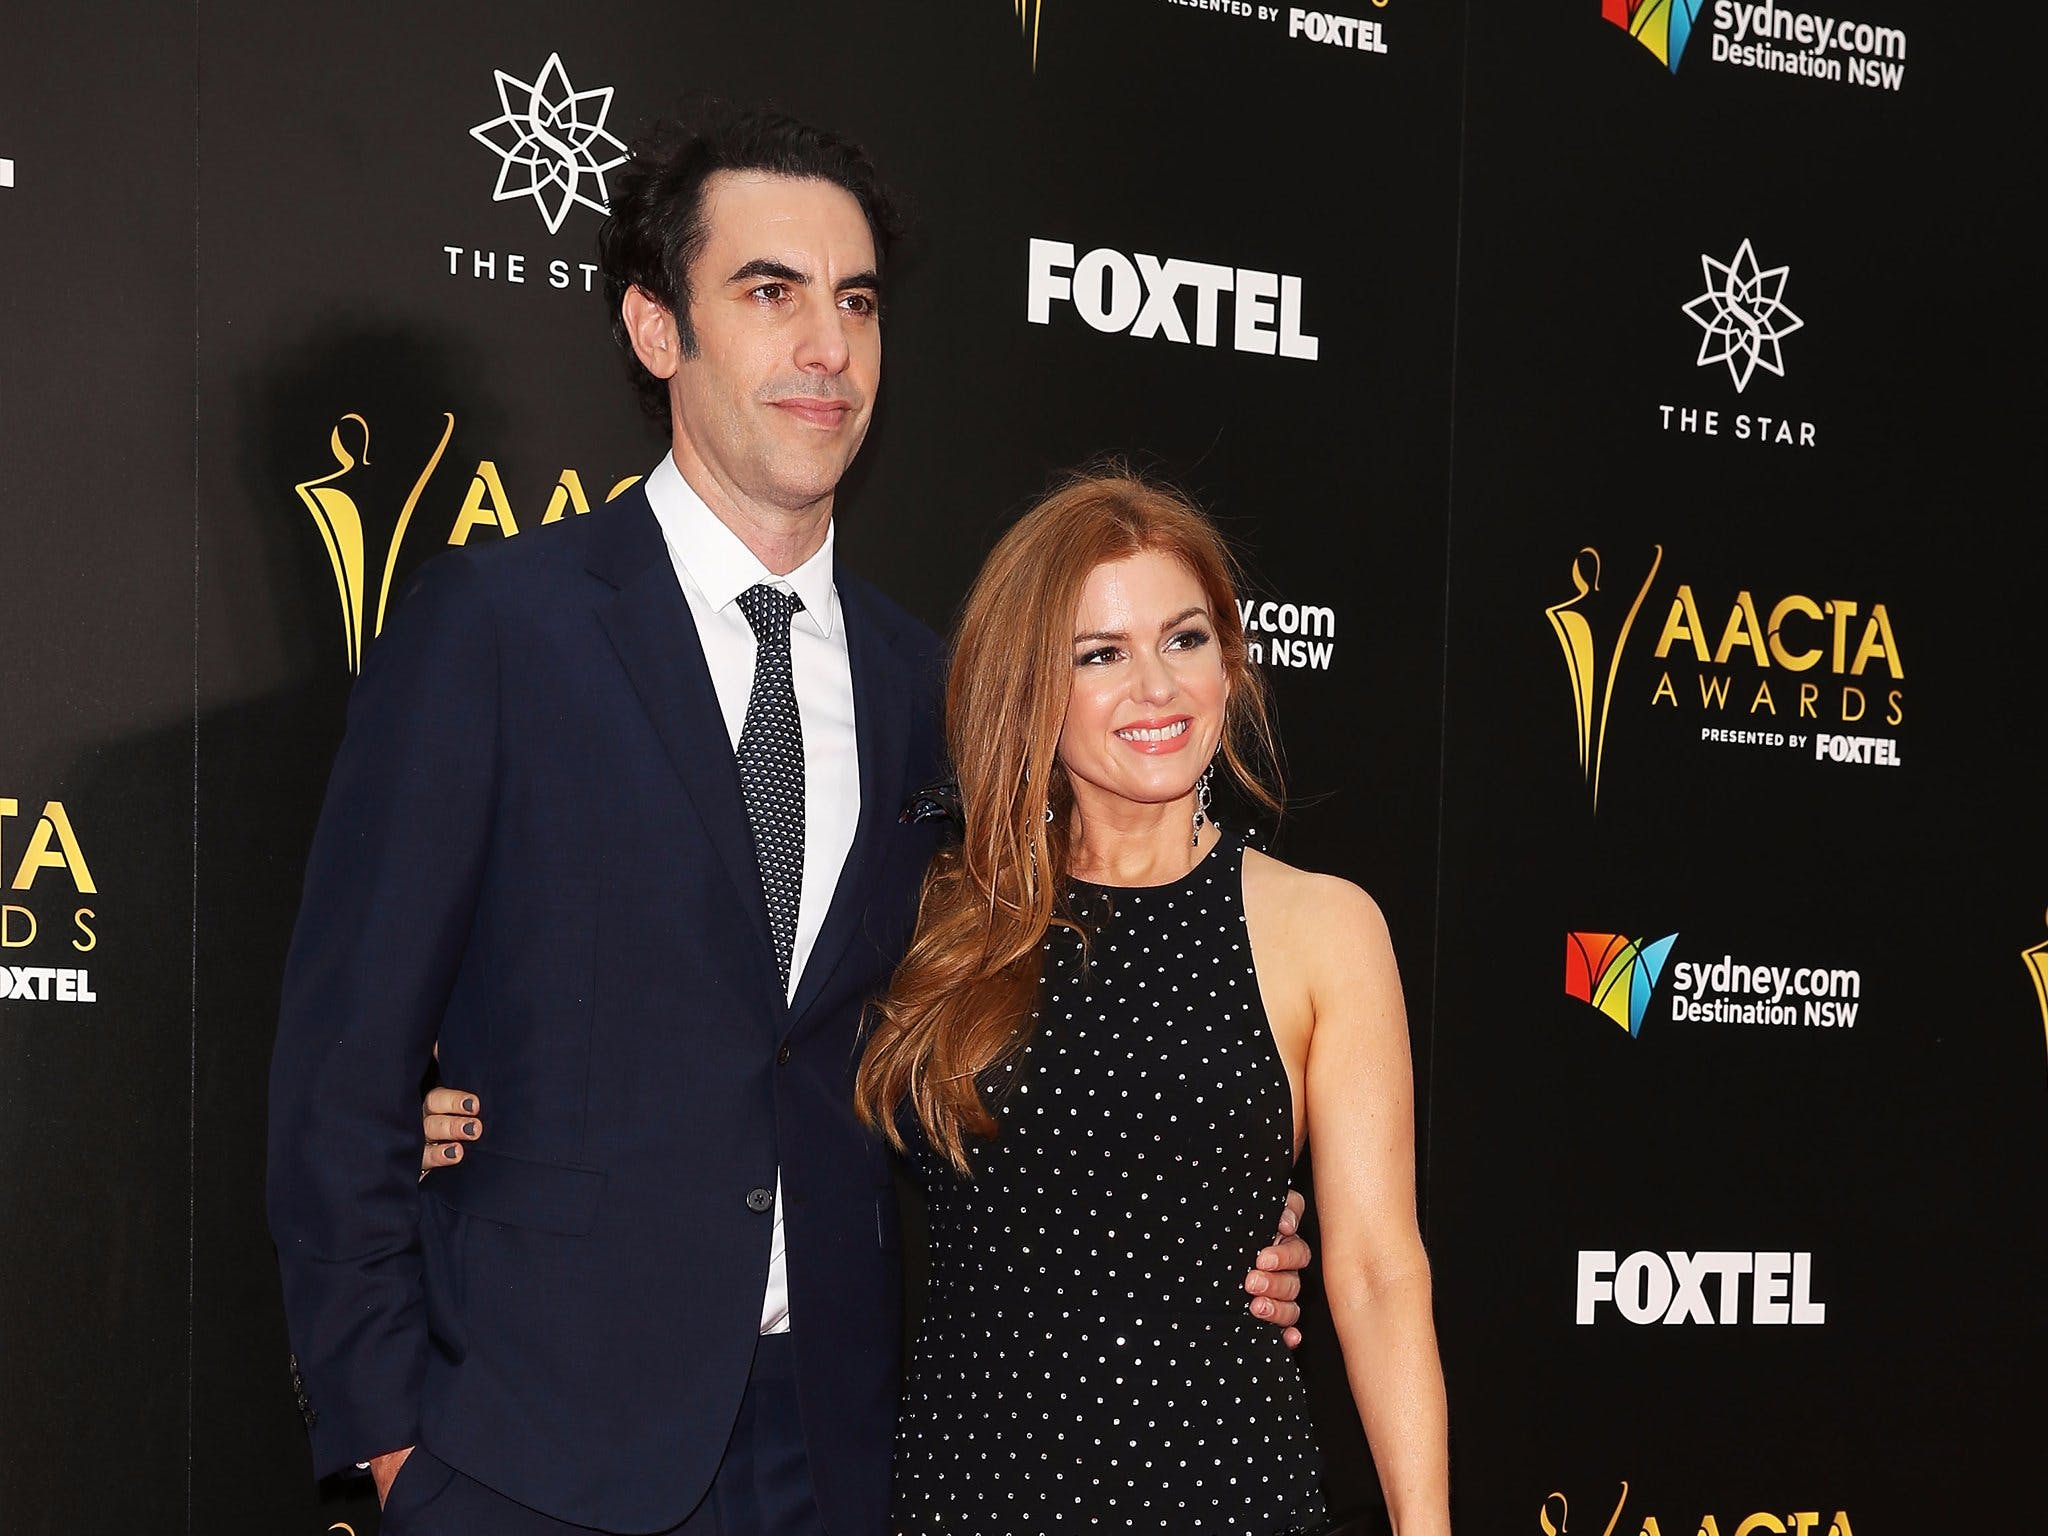 Sacha Baron Cohen and Isla Fisher at the 6th AACTA Awards